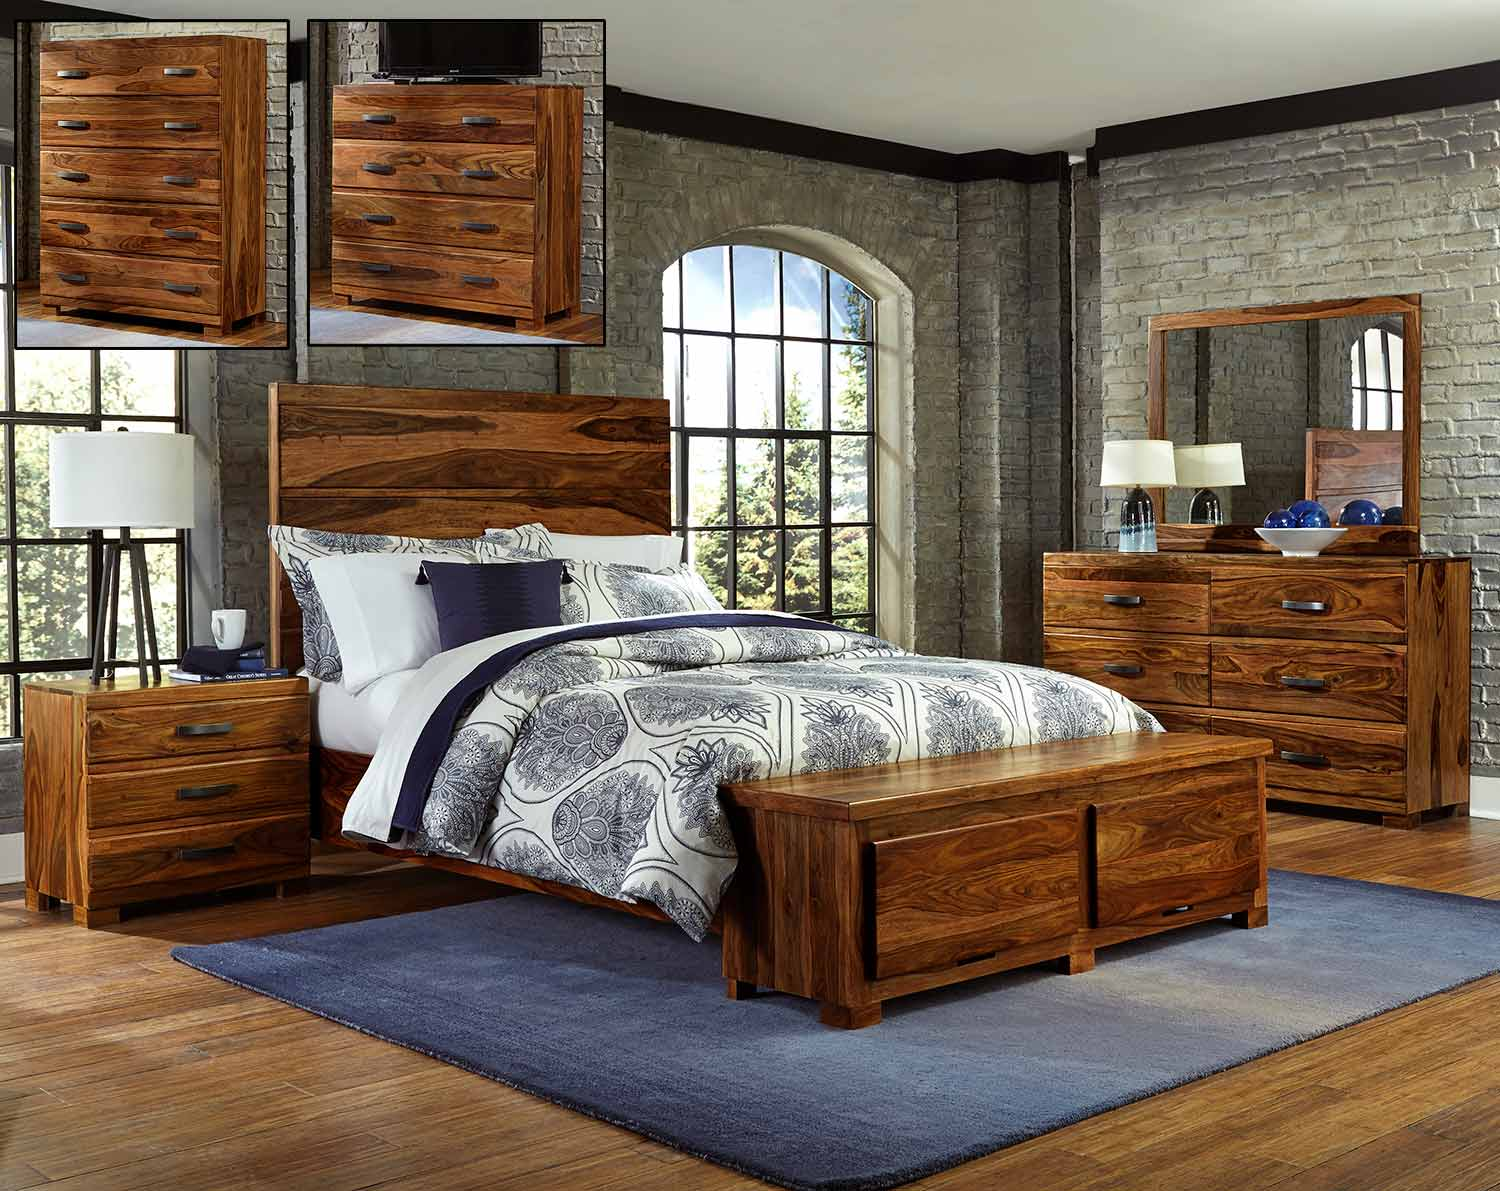 Hillsdale Madera Storage Bedroom Set - Natural